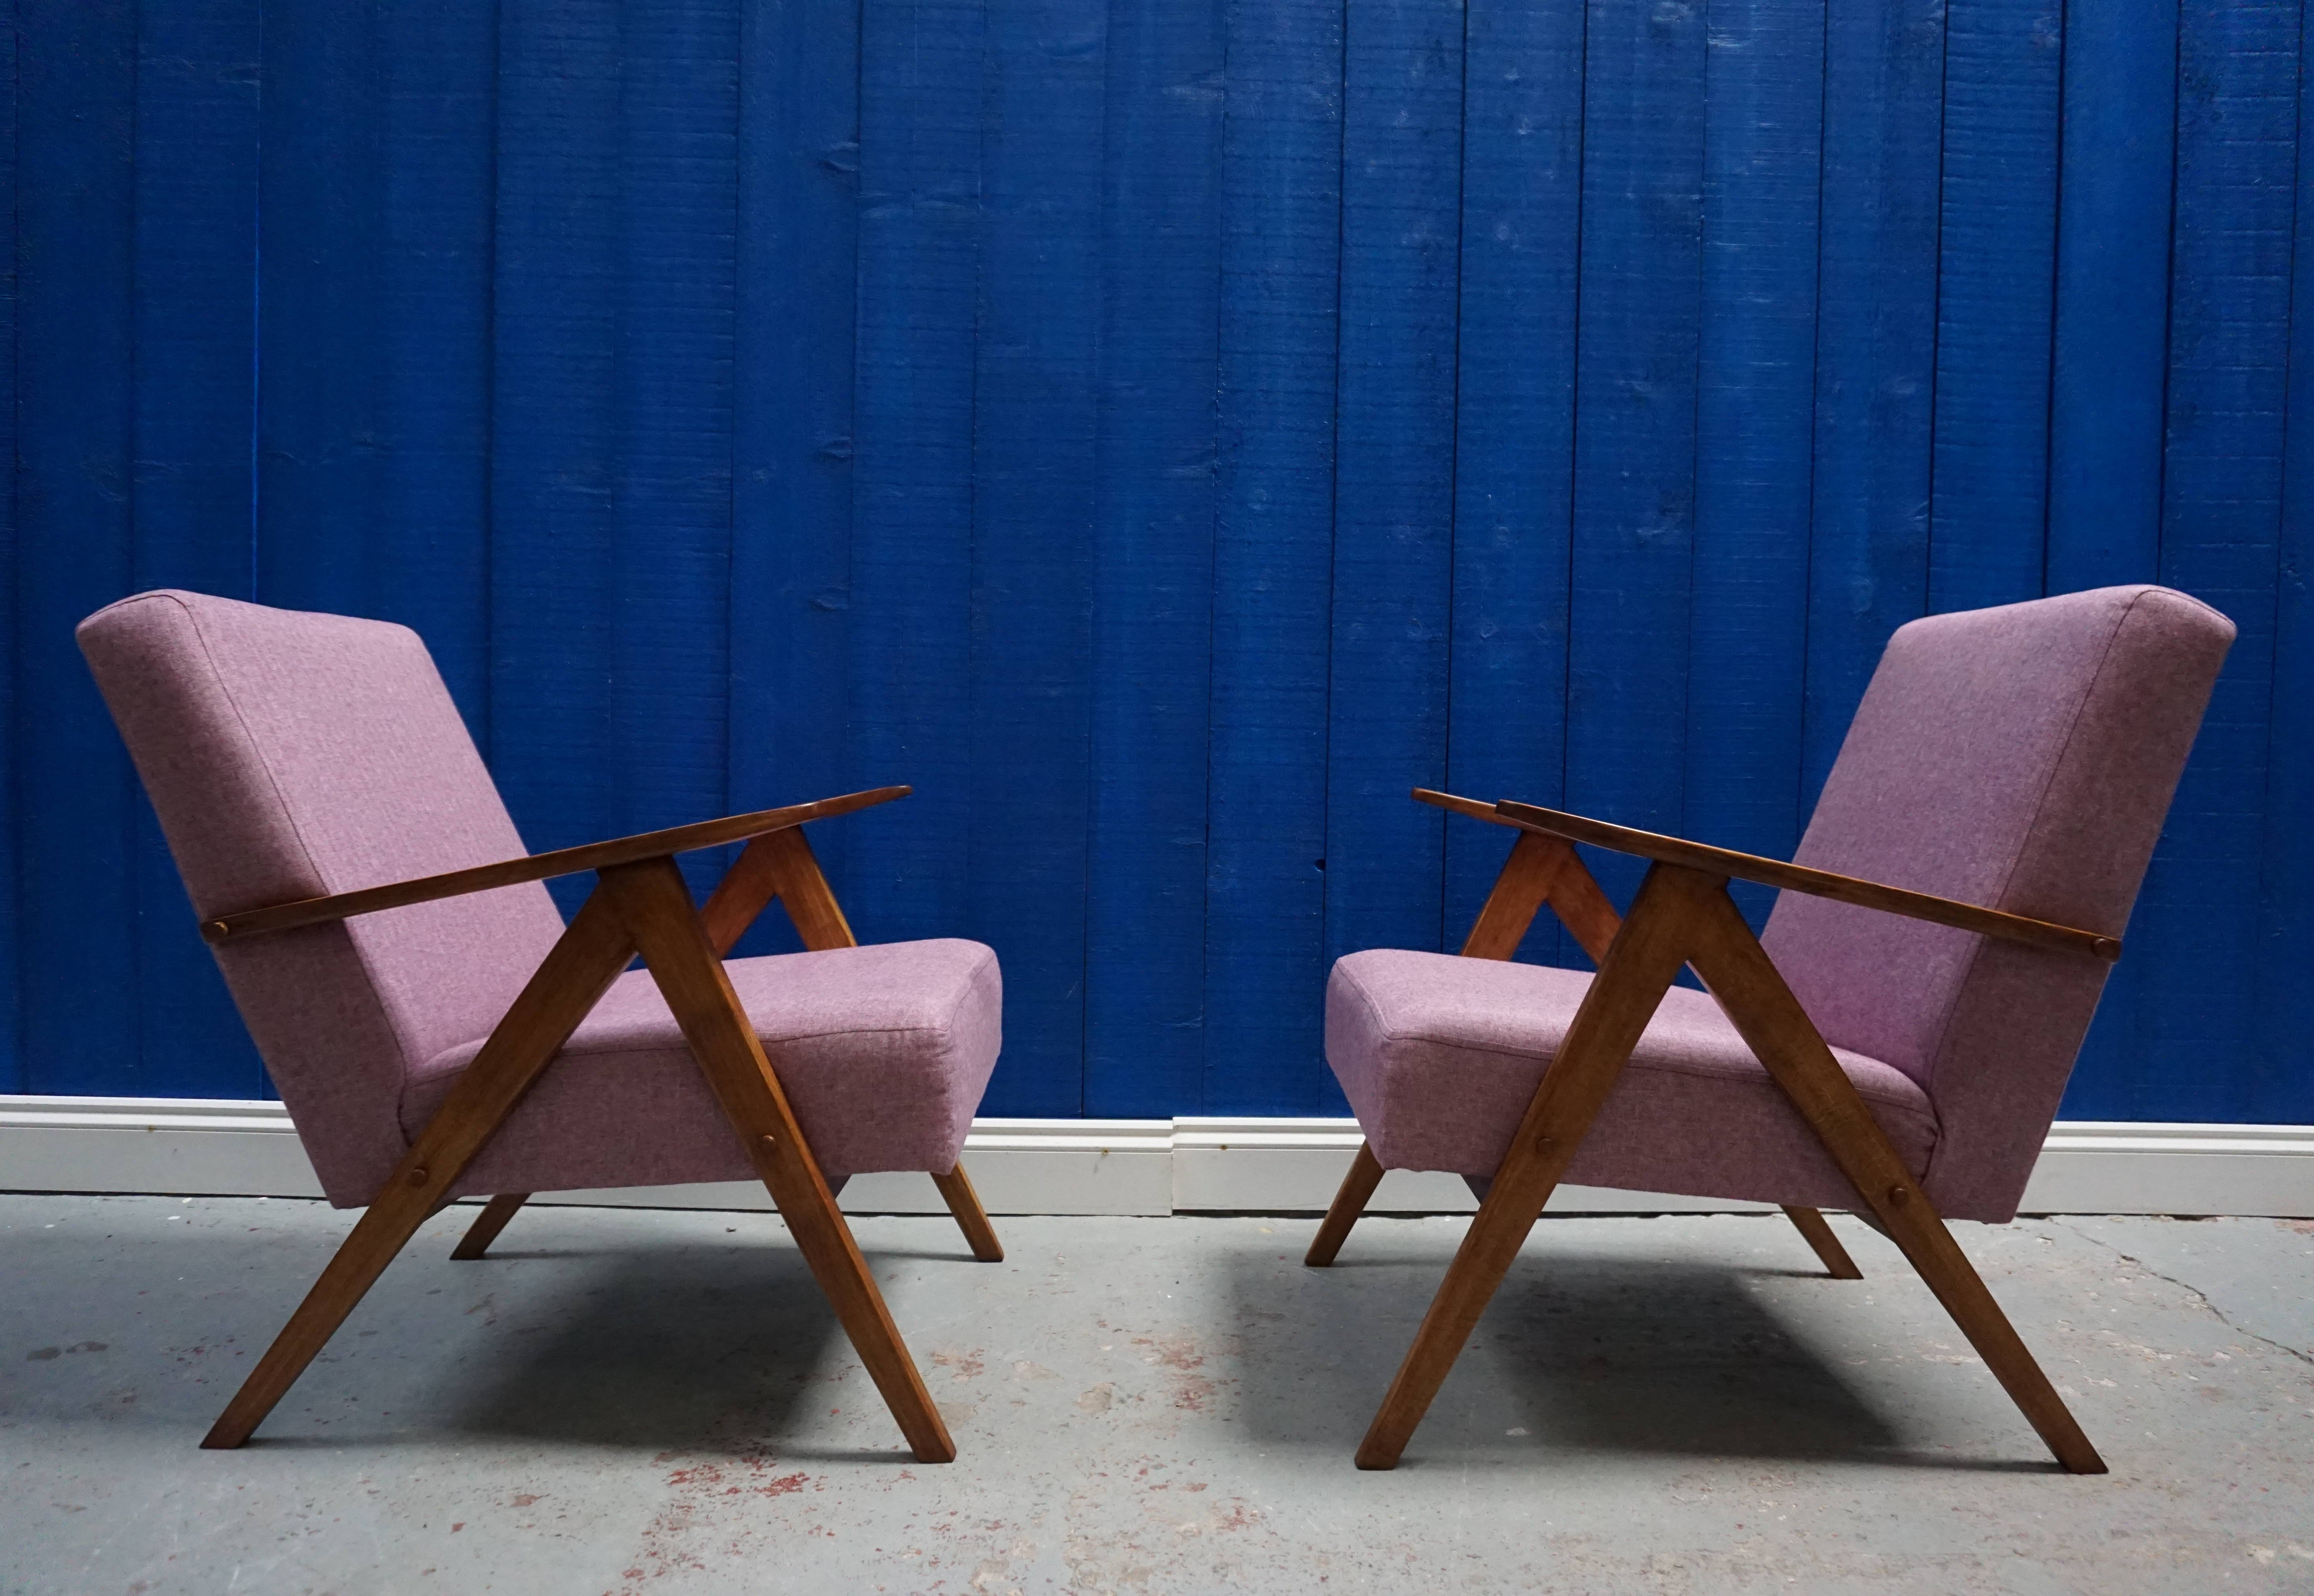 Pleasant Pair Of Mid Century Modern Easy Chairs In Pink Tweed 1960S Dailytribune Chair Design For Home Dailytribuneorg